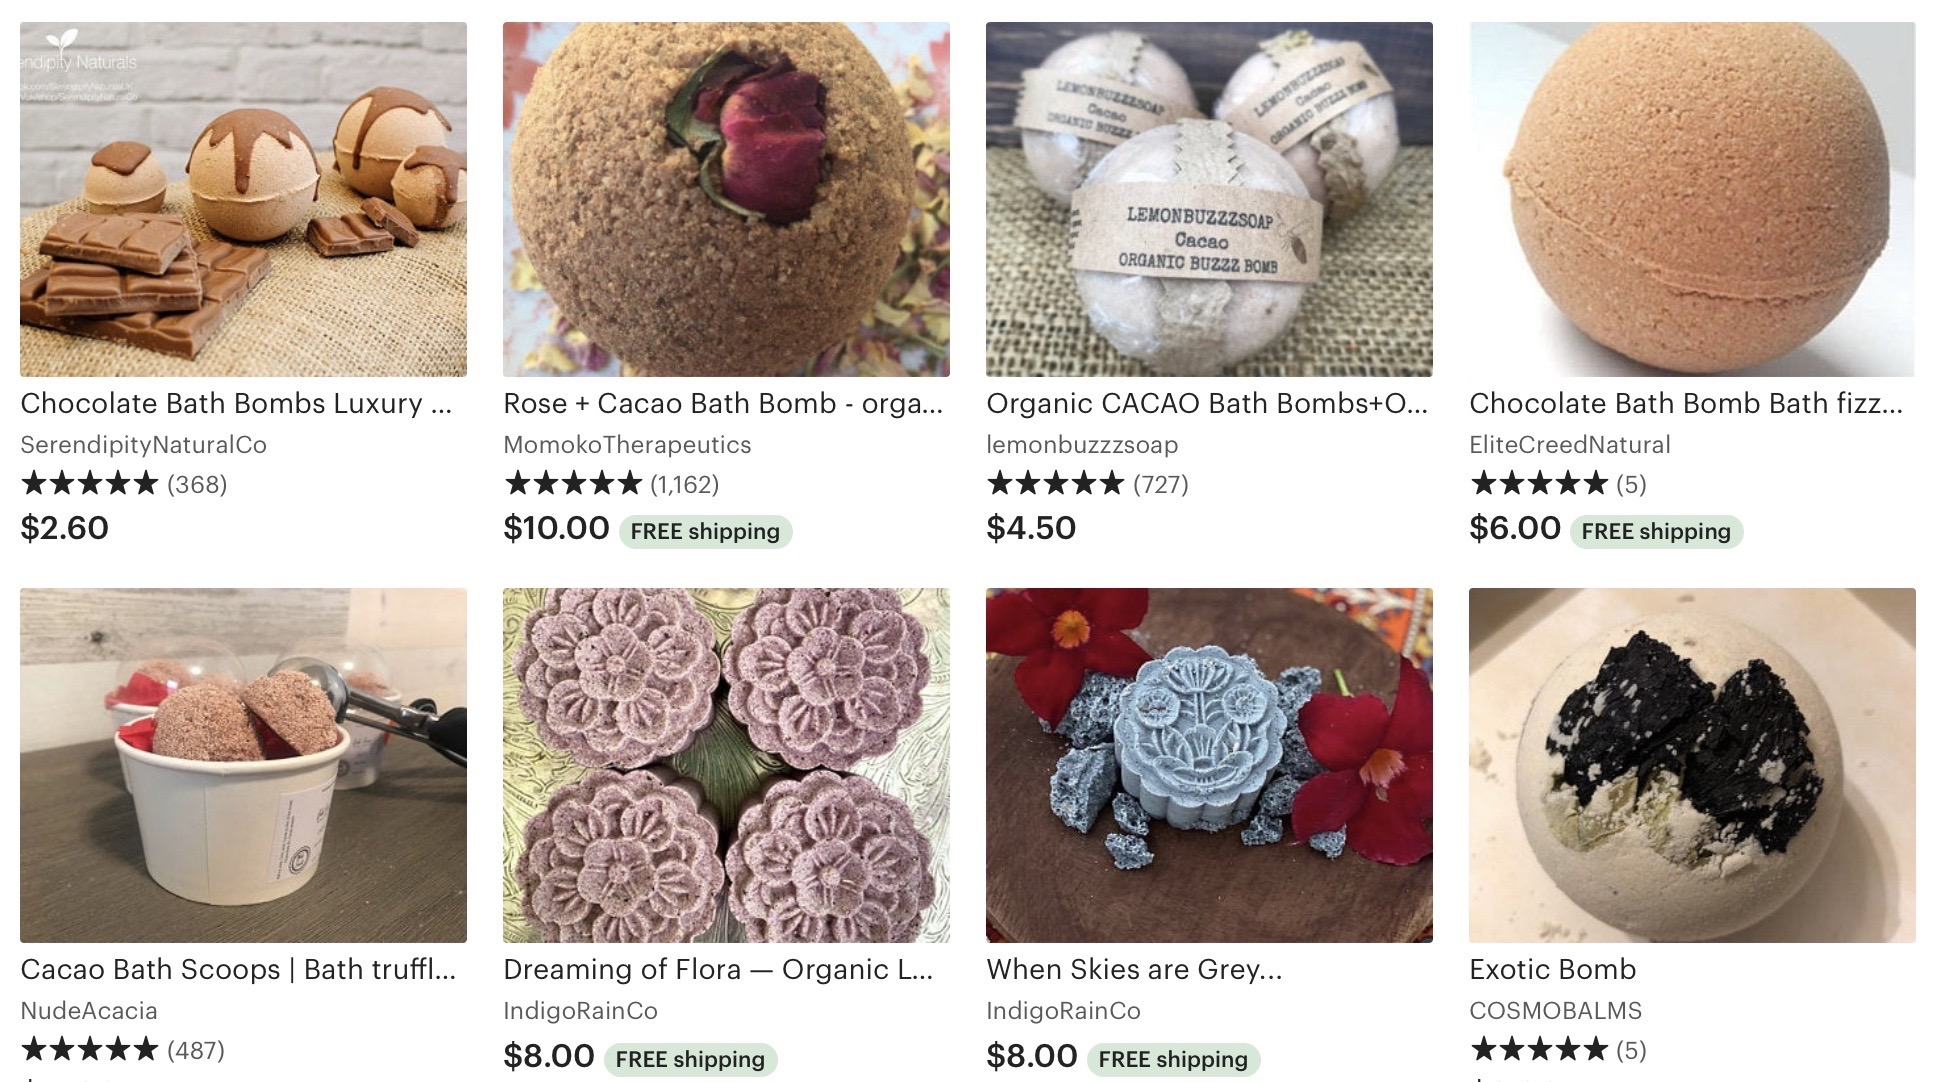 Cacao is a popular ingredient in bath bombs sold on Etsy.